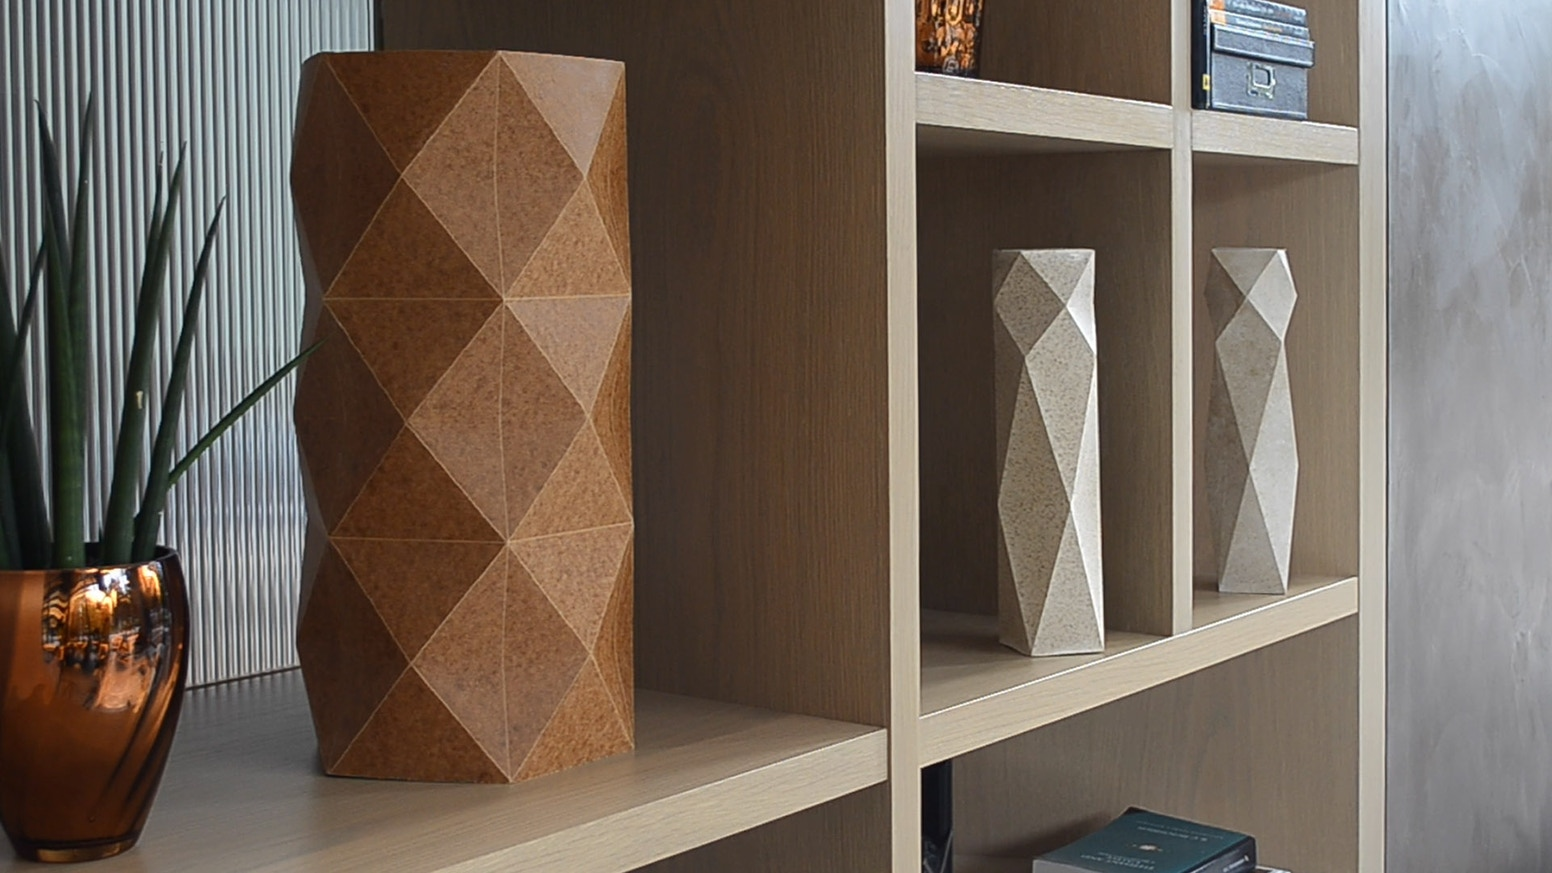 Changing how we recycle. Bringing the organic into design. This collection transforms tea into beautiful homeware.